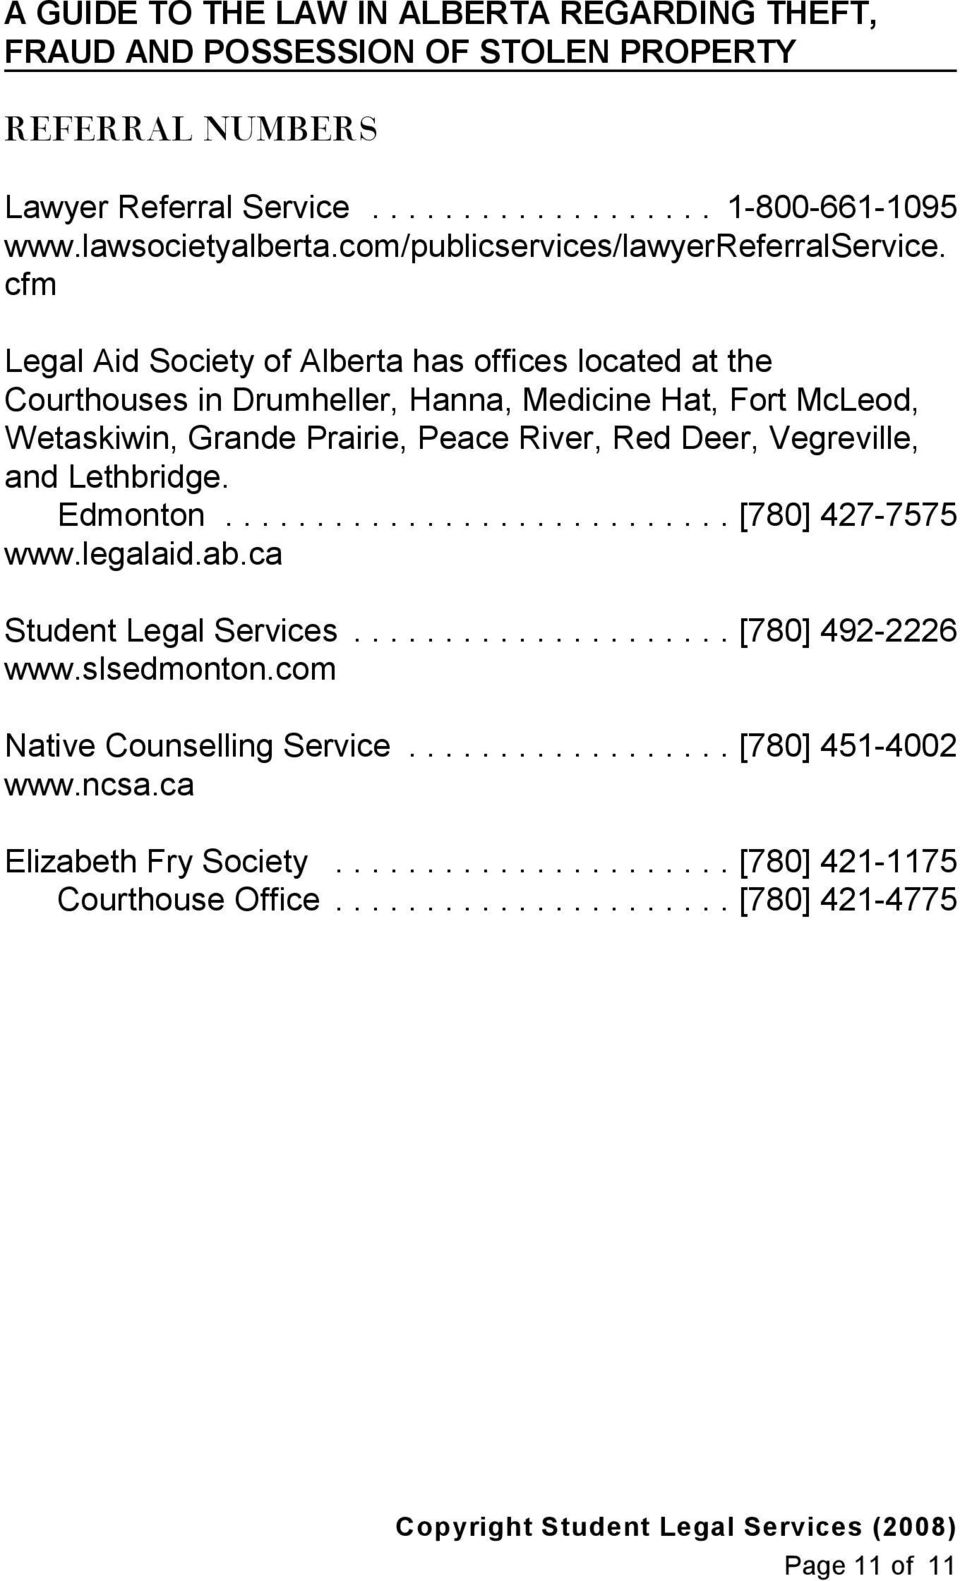 Peace River, Red Deer, Vegreville, and Lethbridge. Edmonton...[780] 427-7575 www.legalaid.ab.ca Student Legal Services...[780] 492-2226 www.